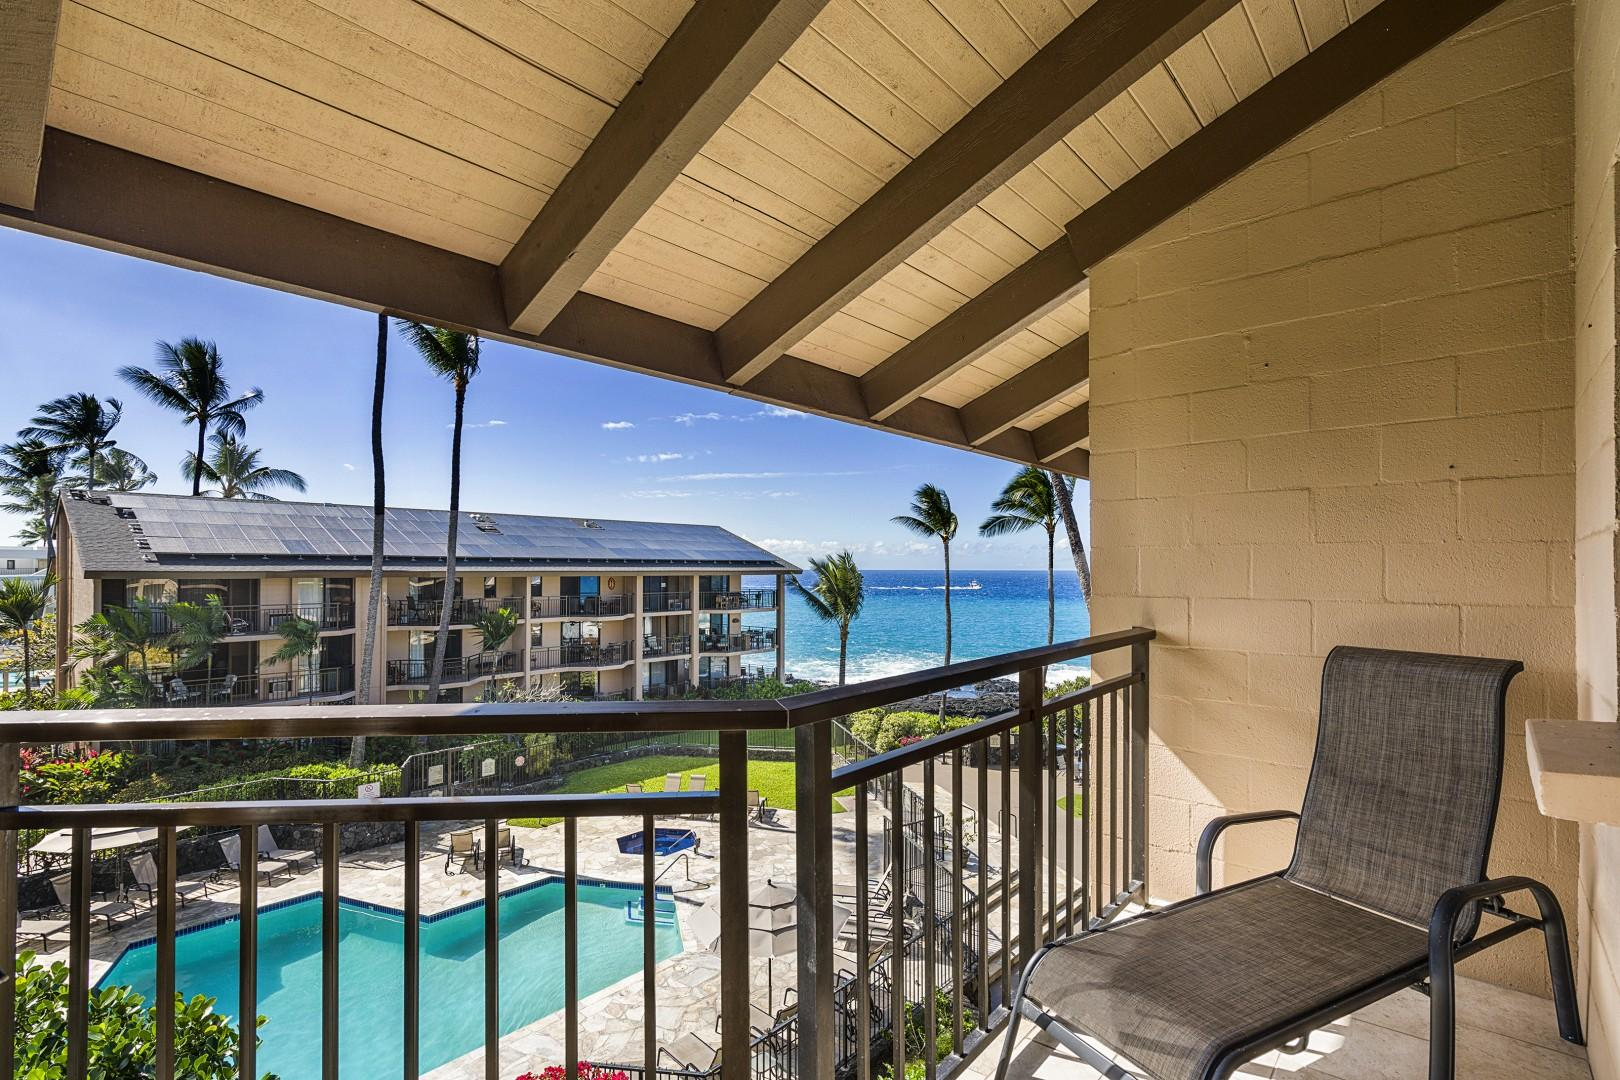 Lounge on the Lanai and take in the tropical weather!